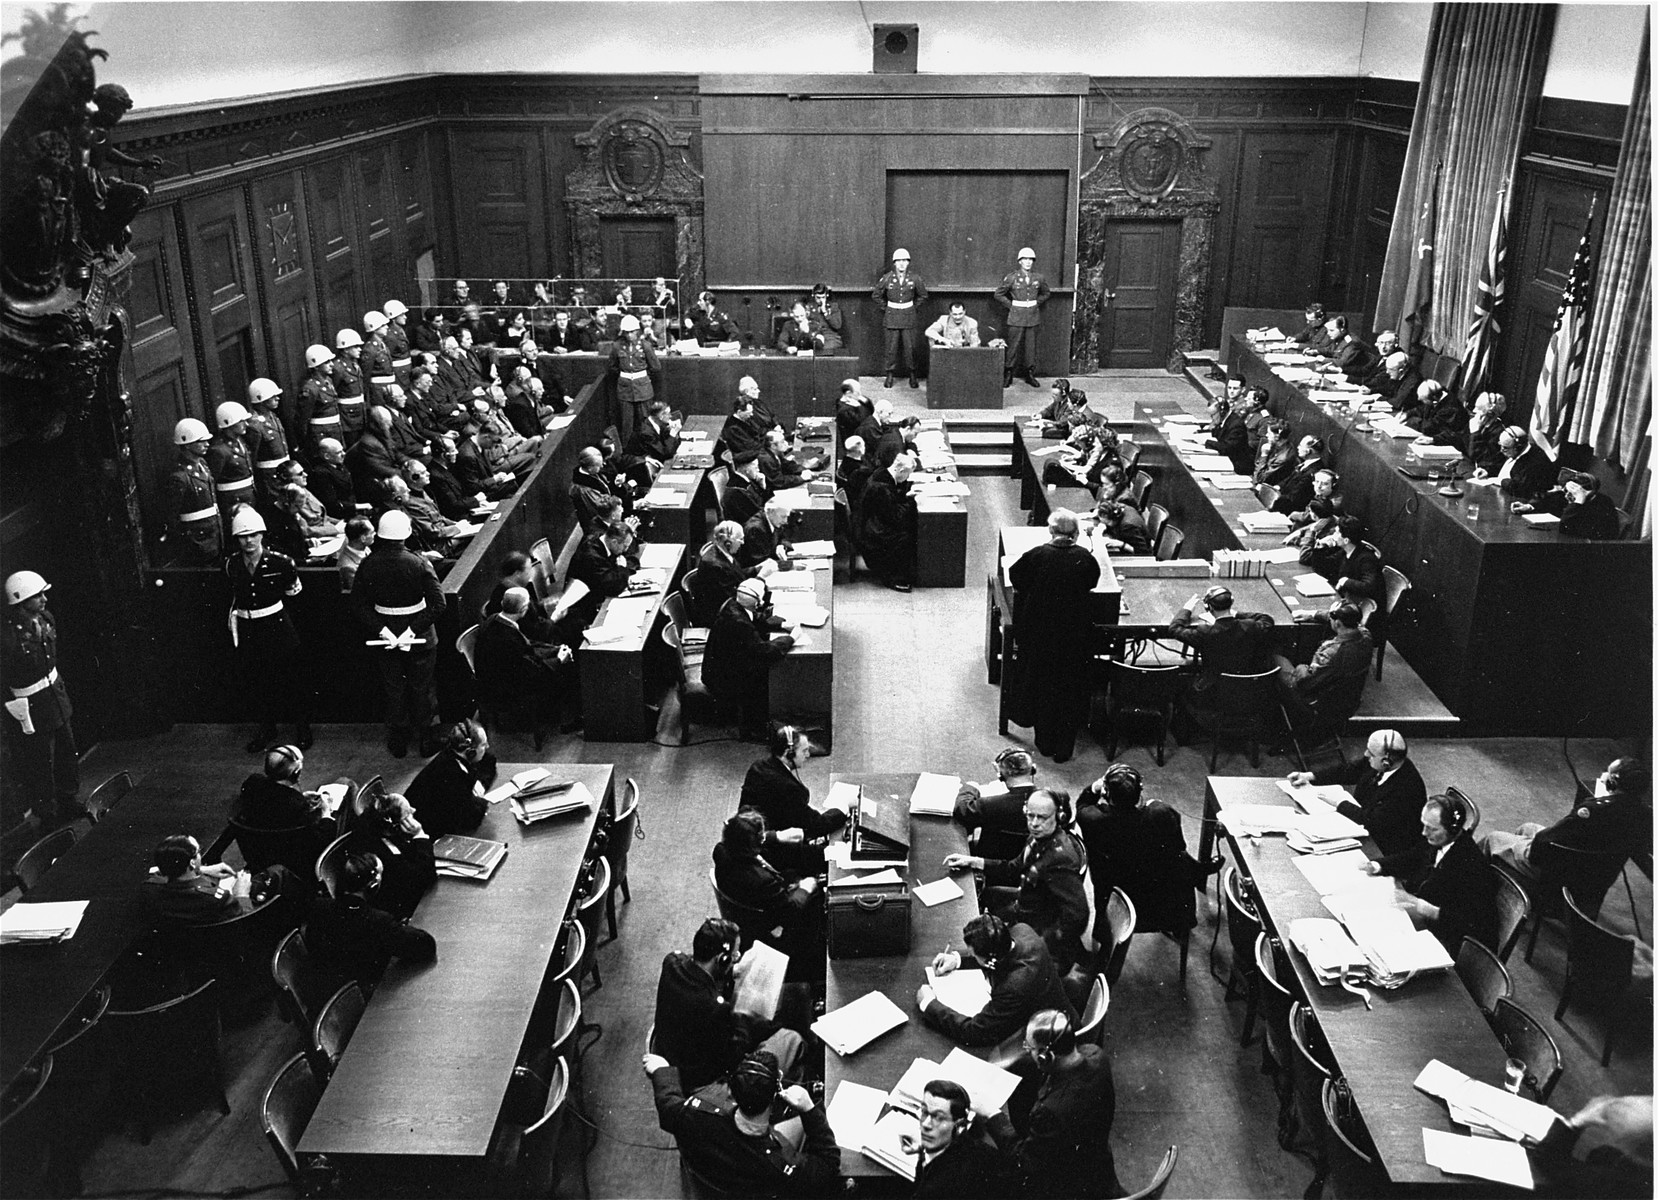 View of the packed courtroom of the International Military Tribunal at Nuremberg.  Lawyers for the prosecution are at the bottom, the defendants on the left, and judges on the right.